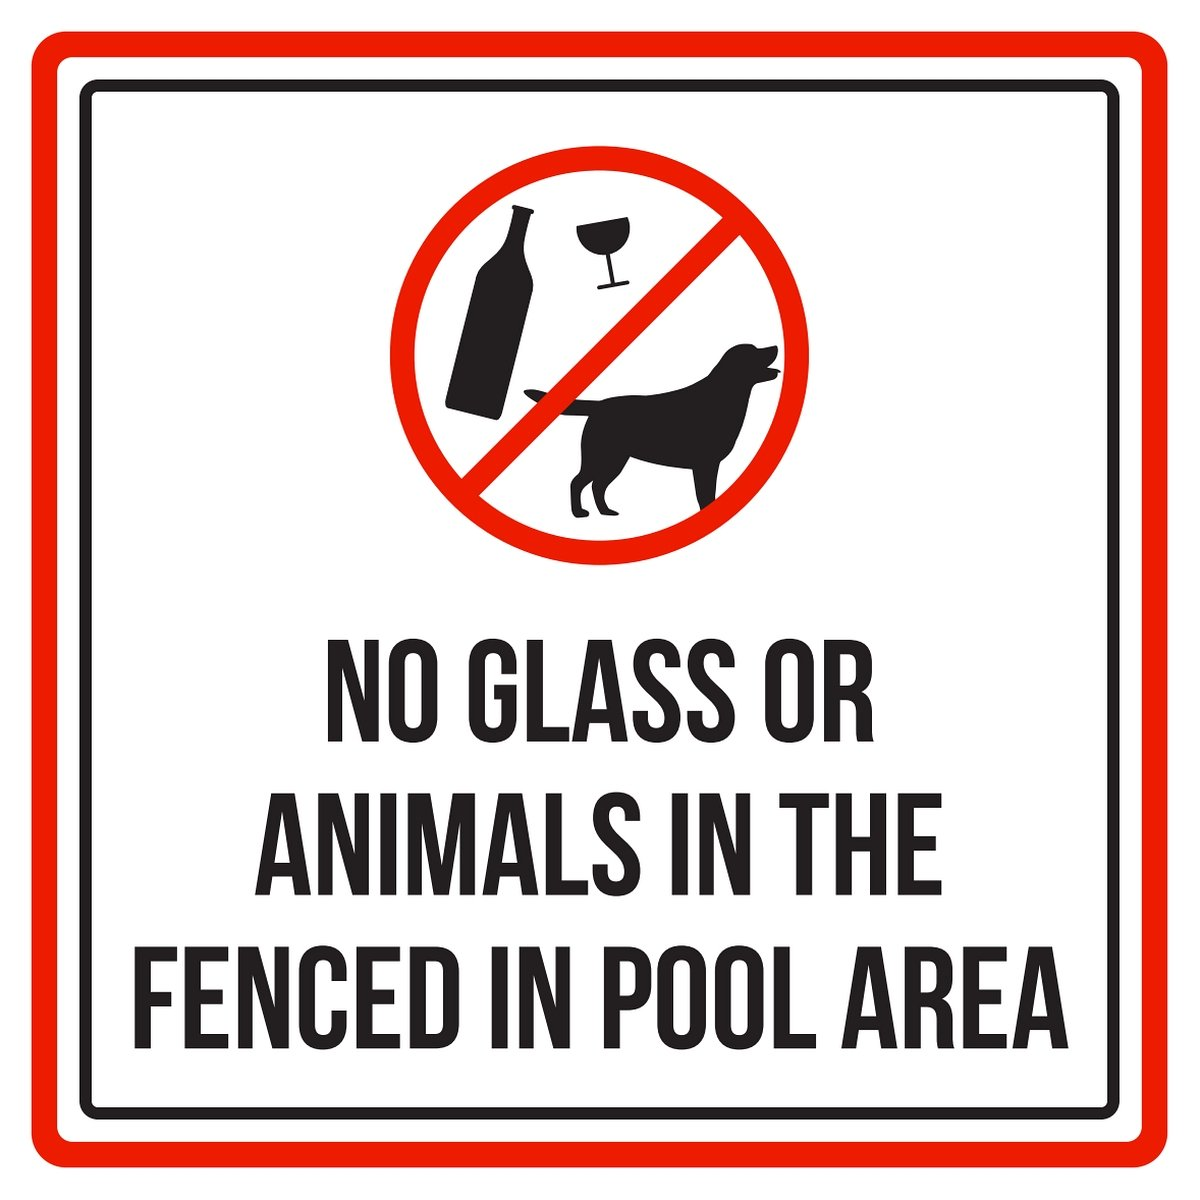 No Glass Or Animals In The Fenced In Pool Area Spa Warning Square Sign, Metal - Inch, 12x12